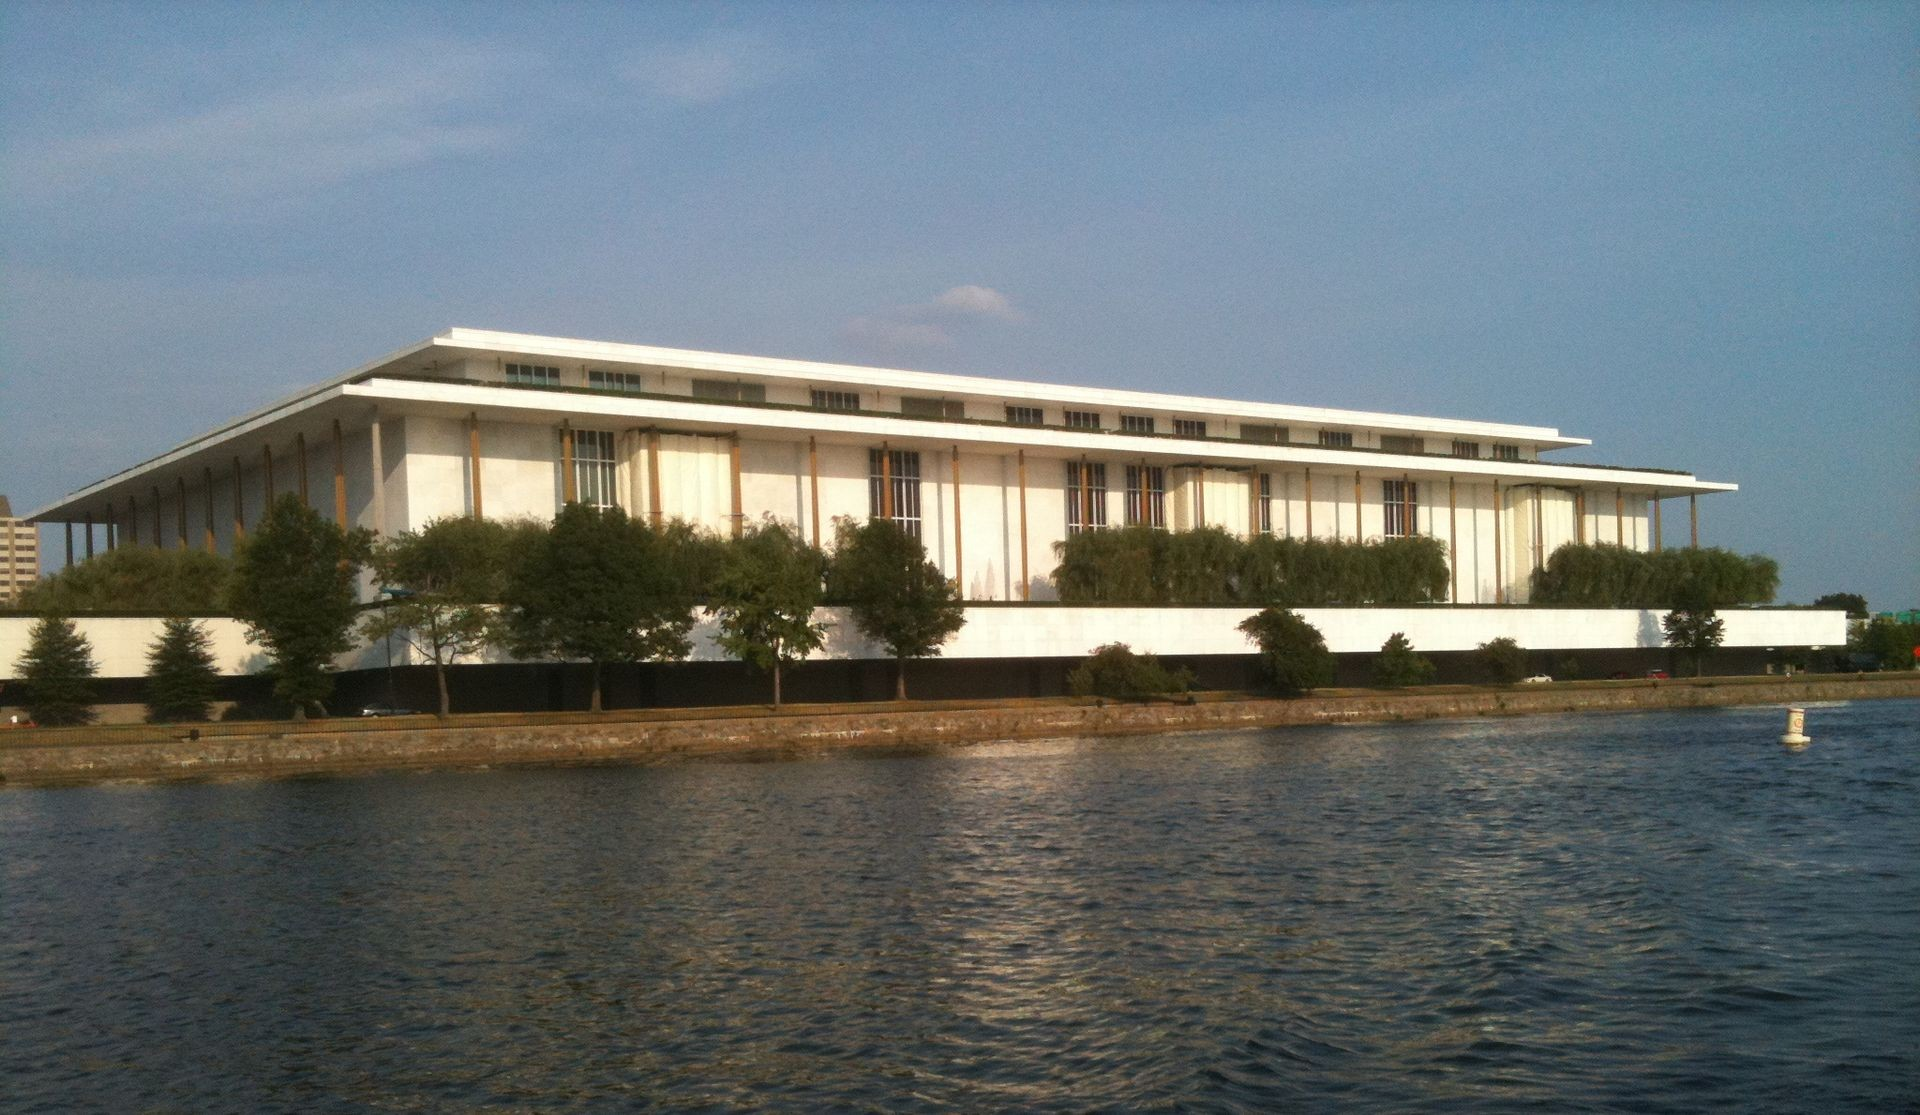 """Ada Louise Huxtable: """"A Look at the Kennedy Center"""", Kennedy Center. Image via Wikipedia"""